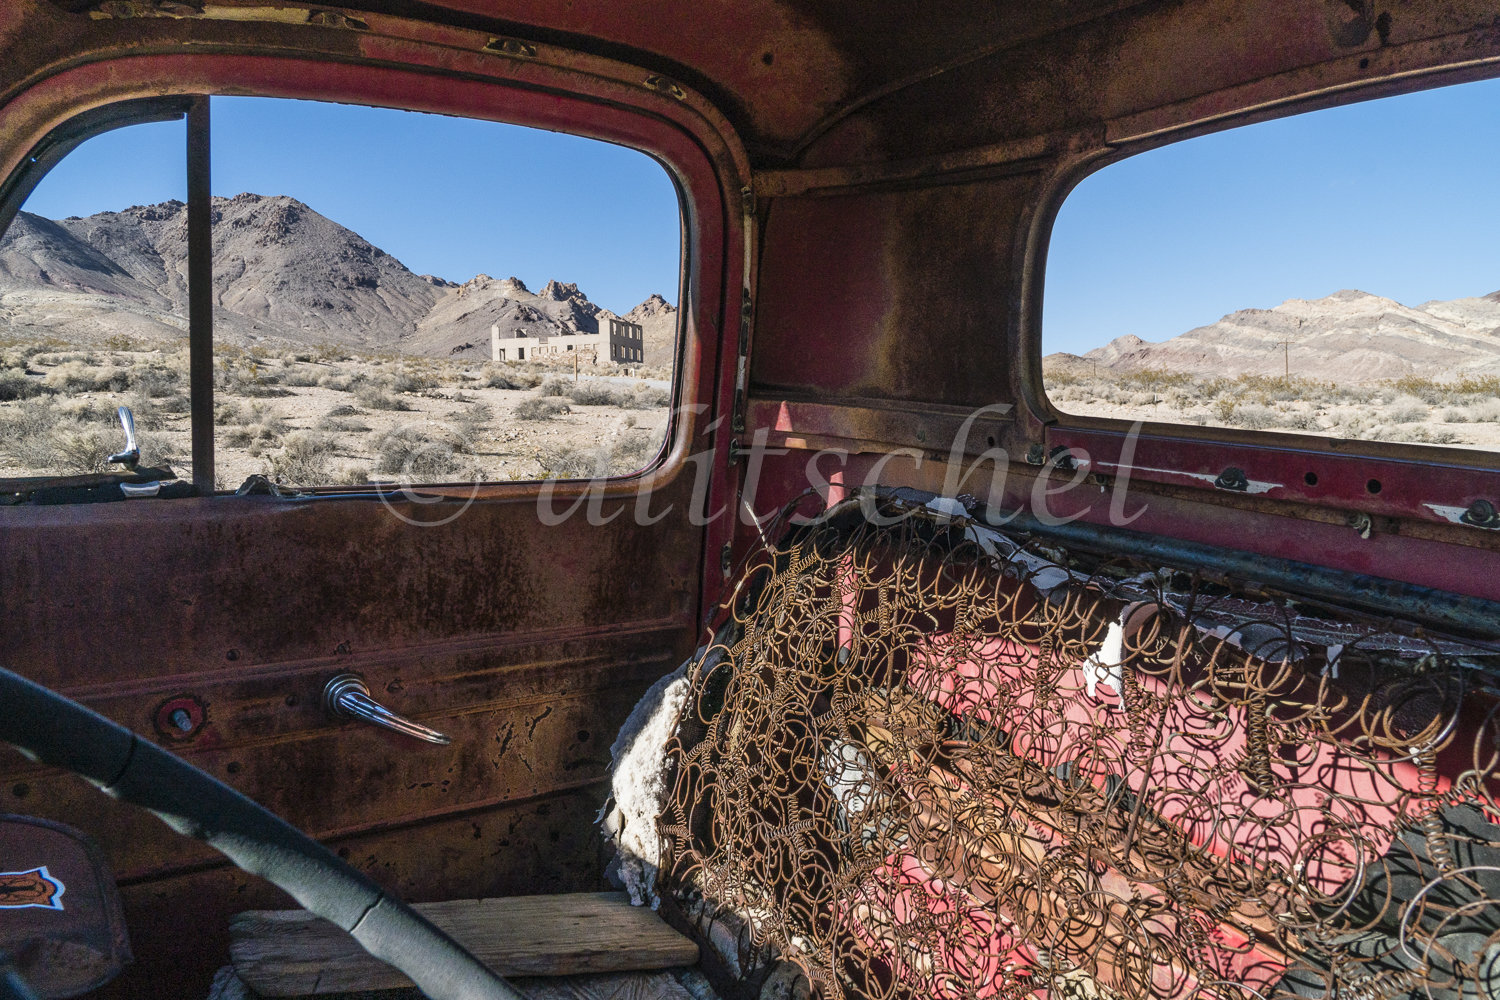 Looking through the window of an abandoned wrecked old red truck in the foreground and the ruins of a building in the ghost town of Rhyolite, Nevada in the background against the surrounding mountains. Rhyolite is a ghost town in Nye County, in the U.S. state of Nevada. It is in the Bullfrog Hills, about 120 miles (190 km) northwest of Las Vegas, near the eastern edge of Death Valley. The town began in early 1905 as one of several mining camps that sprang up after a prospecting discovery in the surrounding hills. During an ensuing gold rush, thousands of gold-seekers, developers, miners and service providers flocked to the Bullfrog Mining District. Many settled in Rhyolite, which lay in a sheltered desert basin near the region's biggest producer, the Montgomery Shoshone Mine.Industrialist Charles M. Schwab bought the Montgomery Shoshone Mine in 1906 and invested heavily in infrastructure, including piped water, electric lines and railroad transportation, that served the town as well as the mine. By 1907, Rhyolite had electric lights, water mains, telephones, newspapers, a hospital, a school, an opera house, and a stock exchange. Published estimates of the town's peak population vary widely, but scholarly sources generally place it in a range between 3,500 and 5,000 in 1907–08.Rhyolite declined almost as rapidly as it rose. After the richest ore was exhausted, production fell. The 1906 San Francisco earthquake and the financial panic of 1907 made it more difficult to raise development capital. In 1908, investors in the Montgomery Shoshone Mine, concerned that it was overvalued, ordered an independent study. When the study's findings proved unfavorable, the company's stock value crashed, further restricting funding. By the end of 1910, the mine was operating at a loss, and it closed in 1911. By this time, many out-of-work miners had moved elsewhere, and Rhyolite's population dropped well below 1,000. By 1920, it was close to zero.After 1920, Rhyolite and its ruins bec